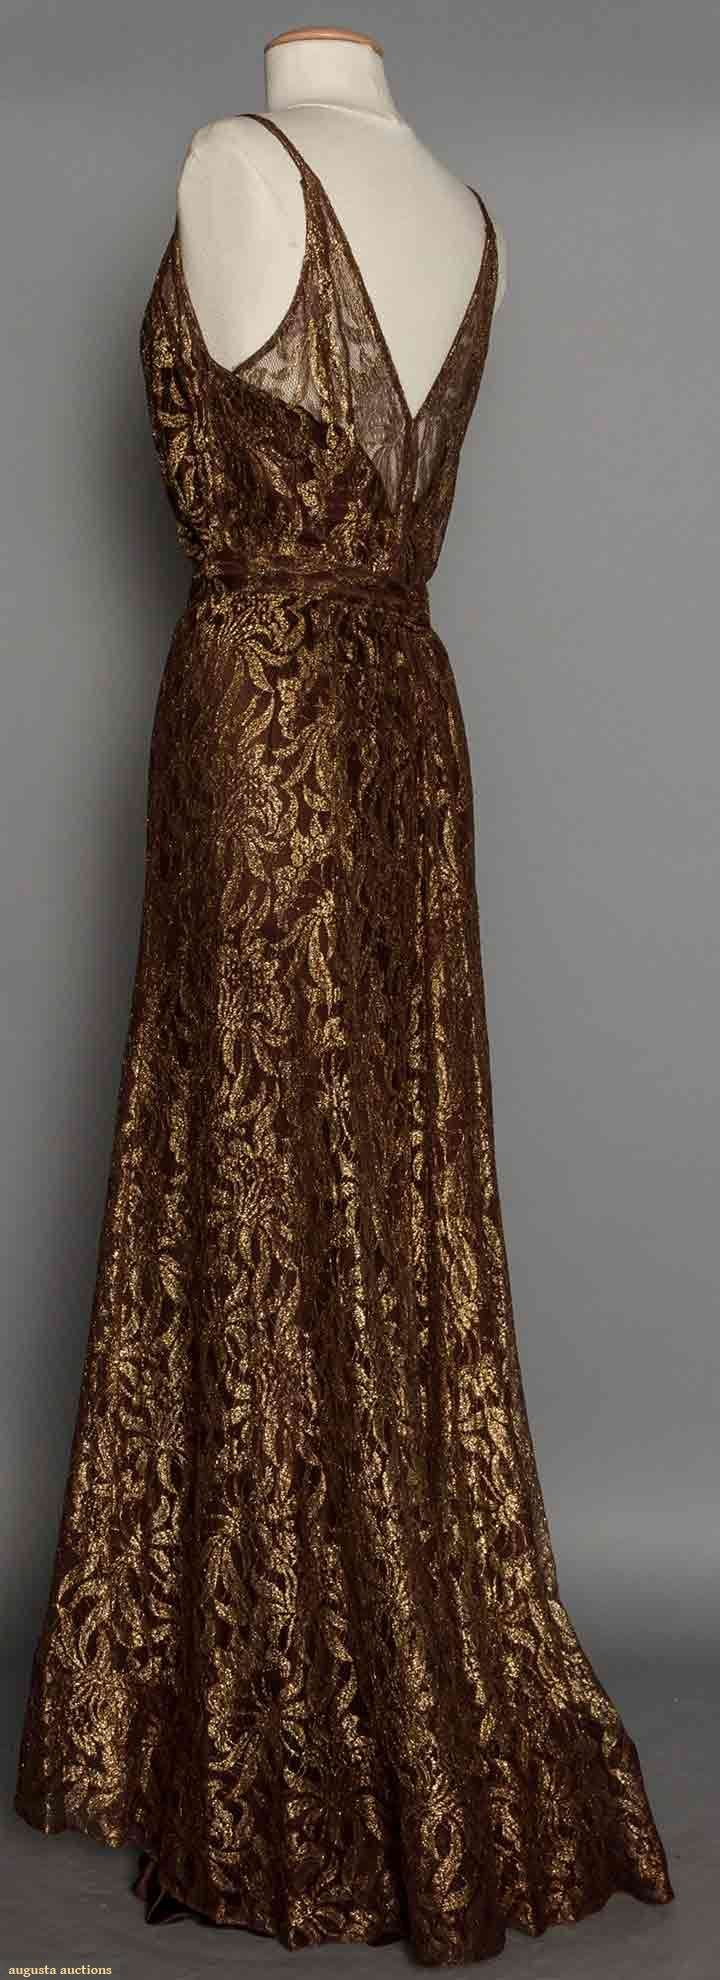 1930's brown & gold lace evening gown (back view)                                                                                                                                                                                 More